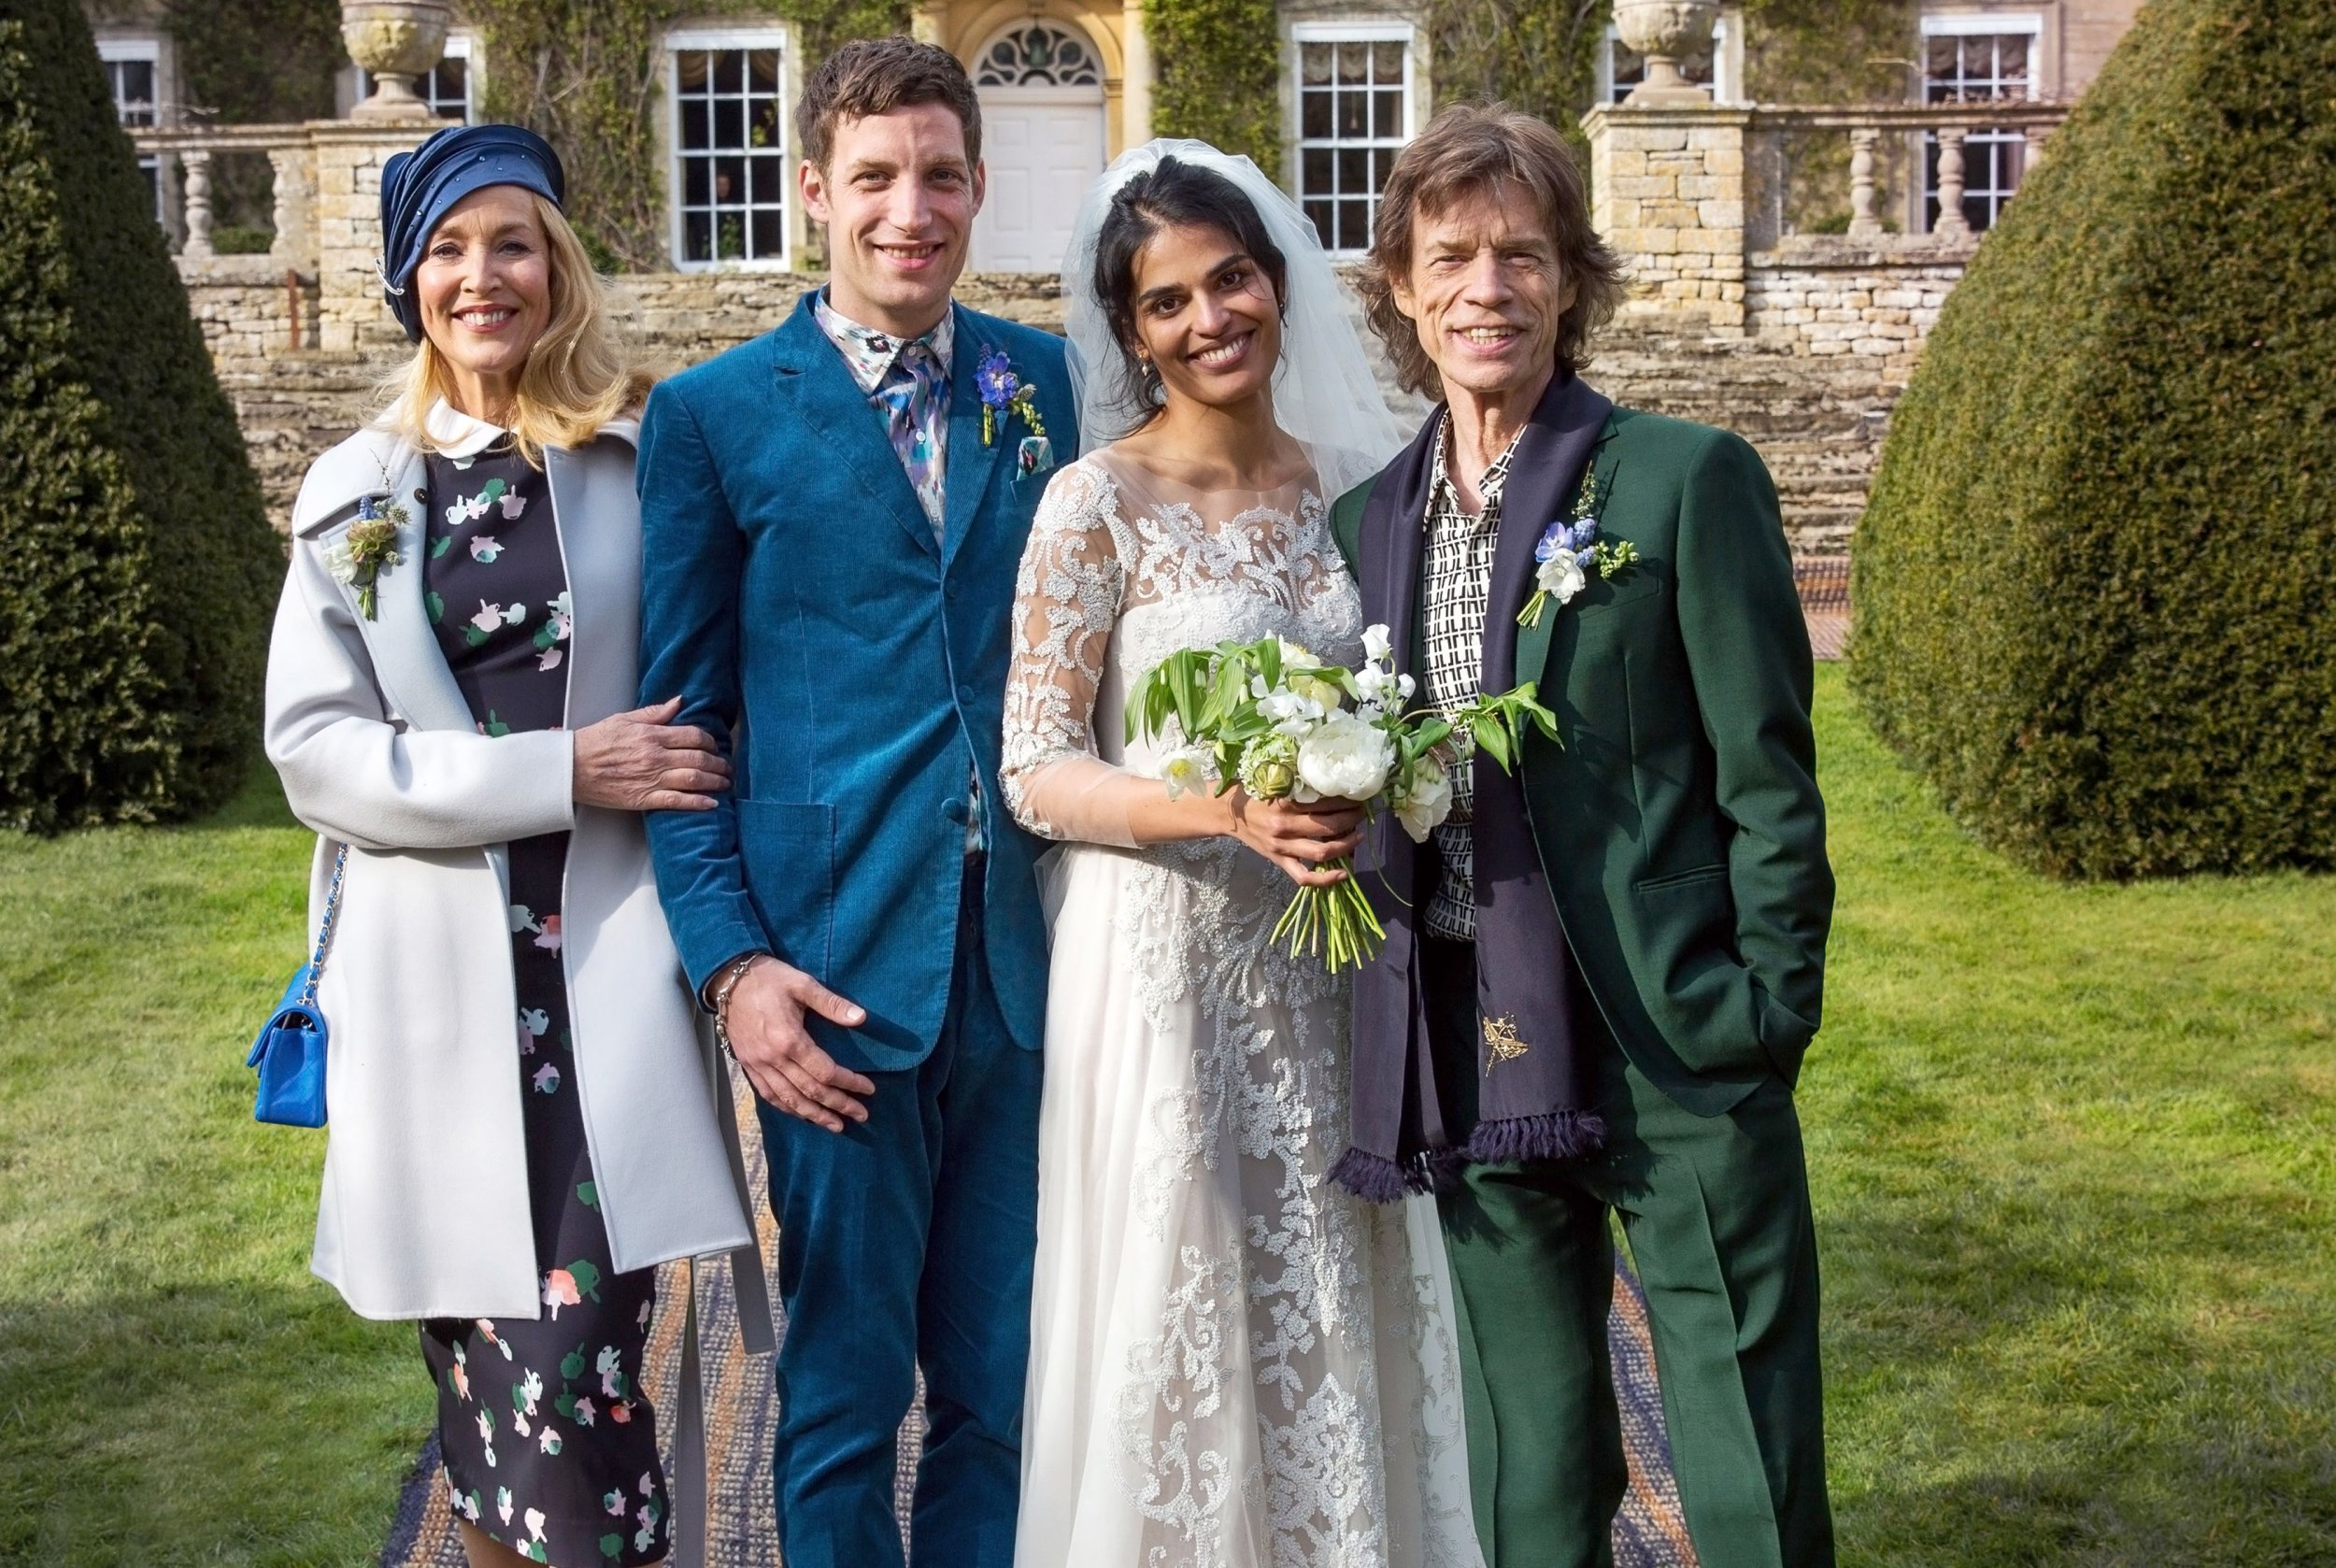 Jerry Hall and ex Mick Jagger reunite at son's wedding party after model's own union with Rupert Murdoch